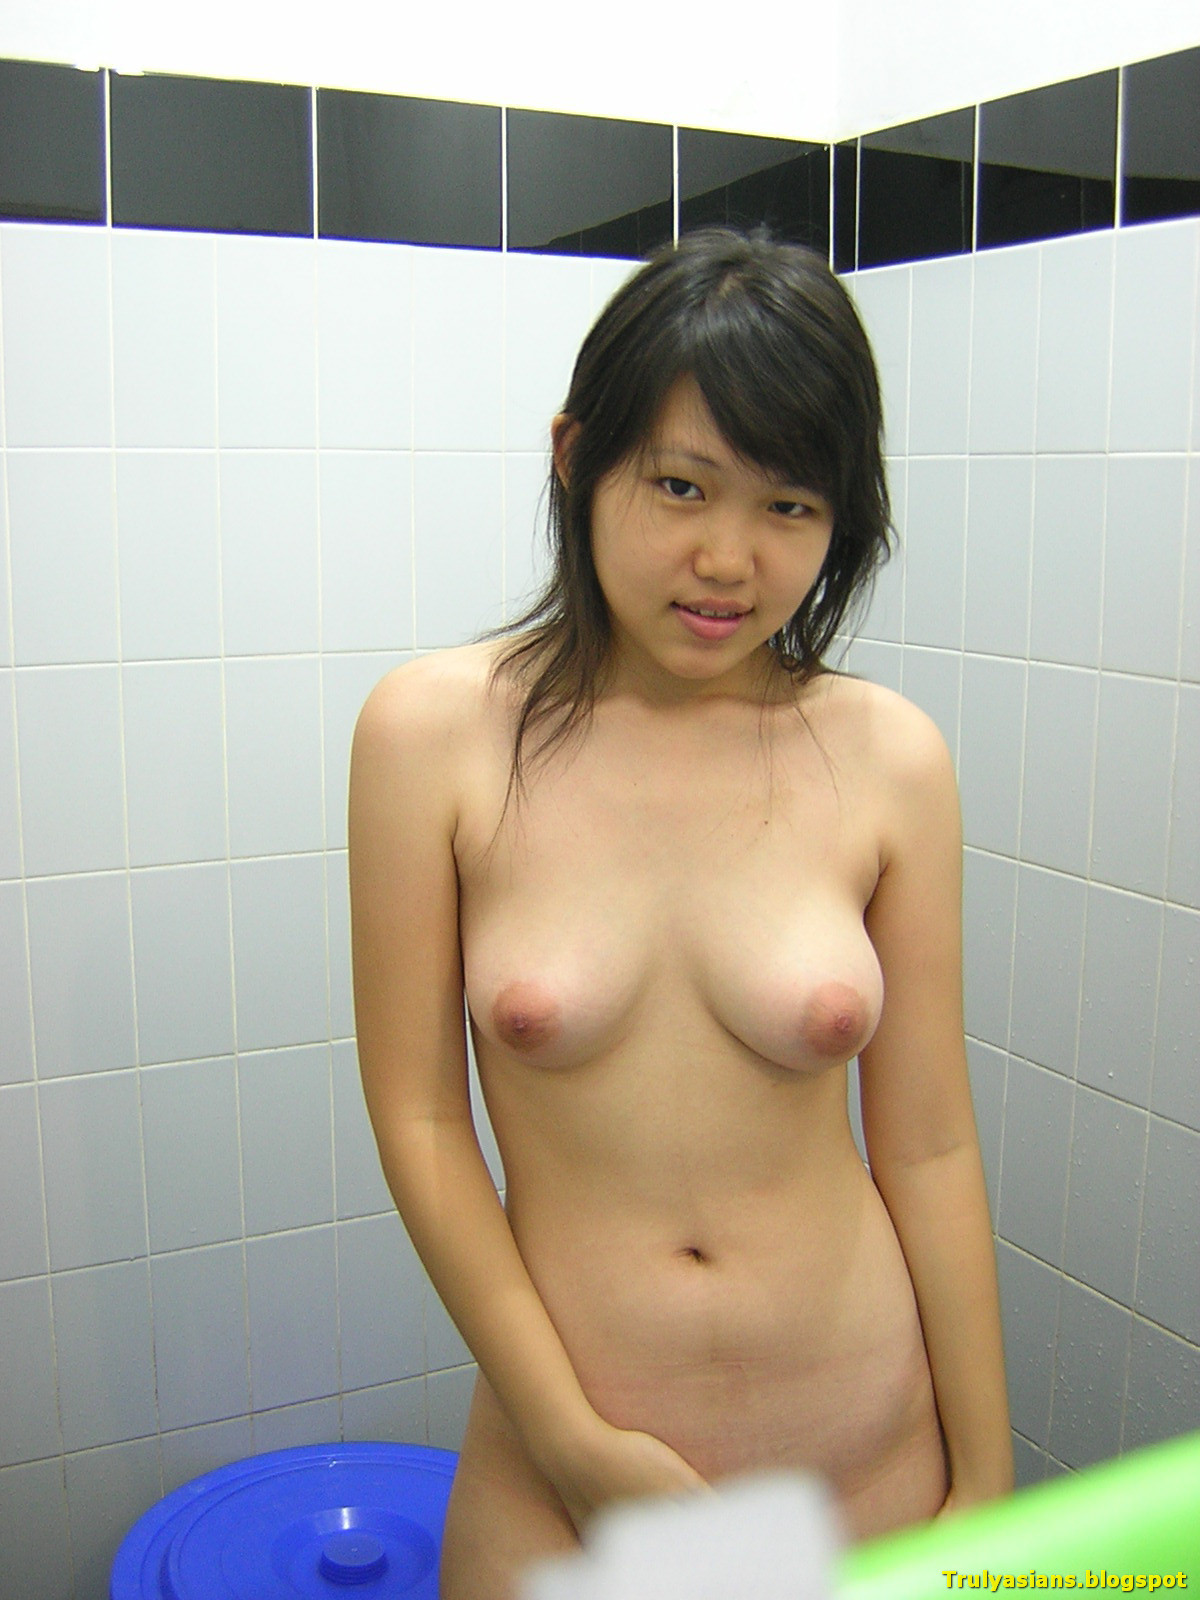 Apologise, but, Cute indonesian girls nude apologise, but